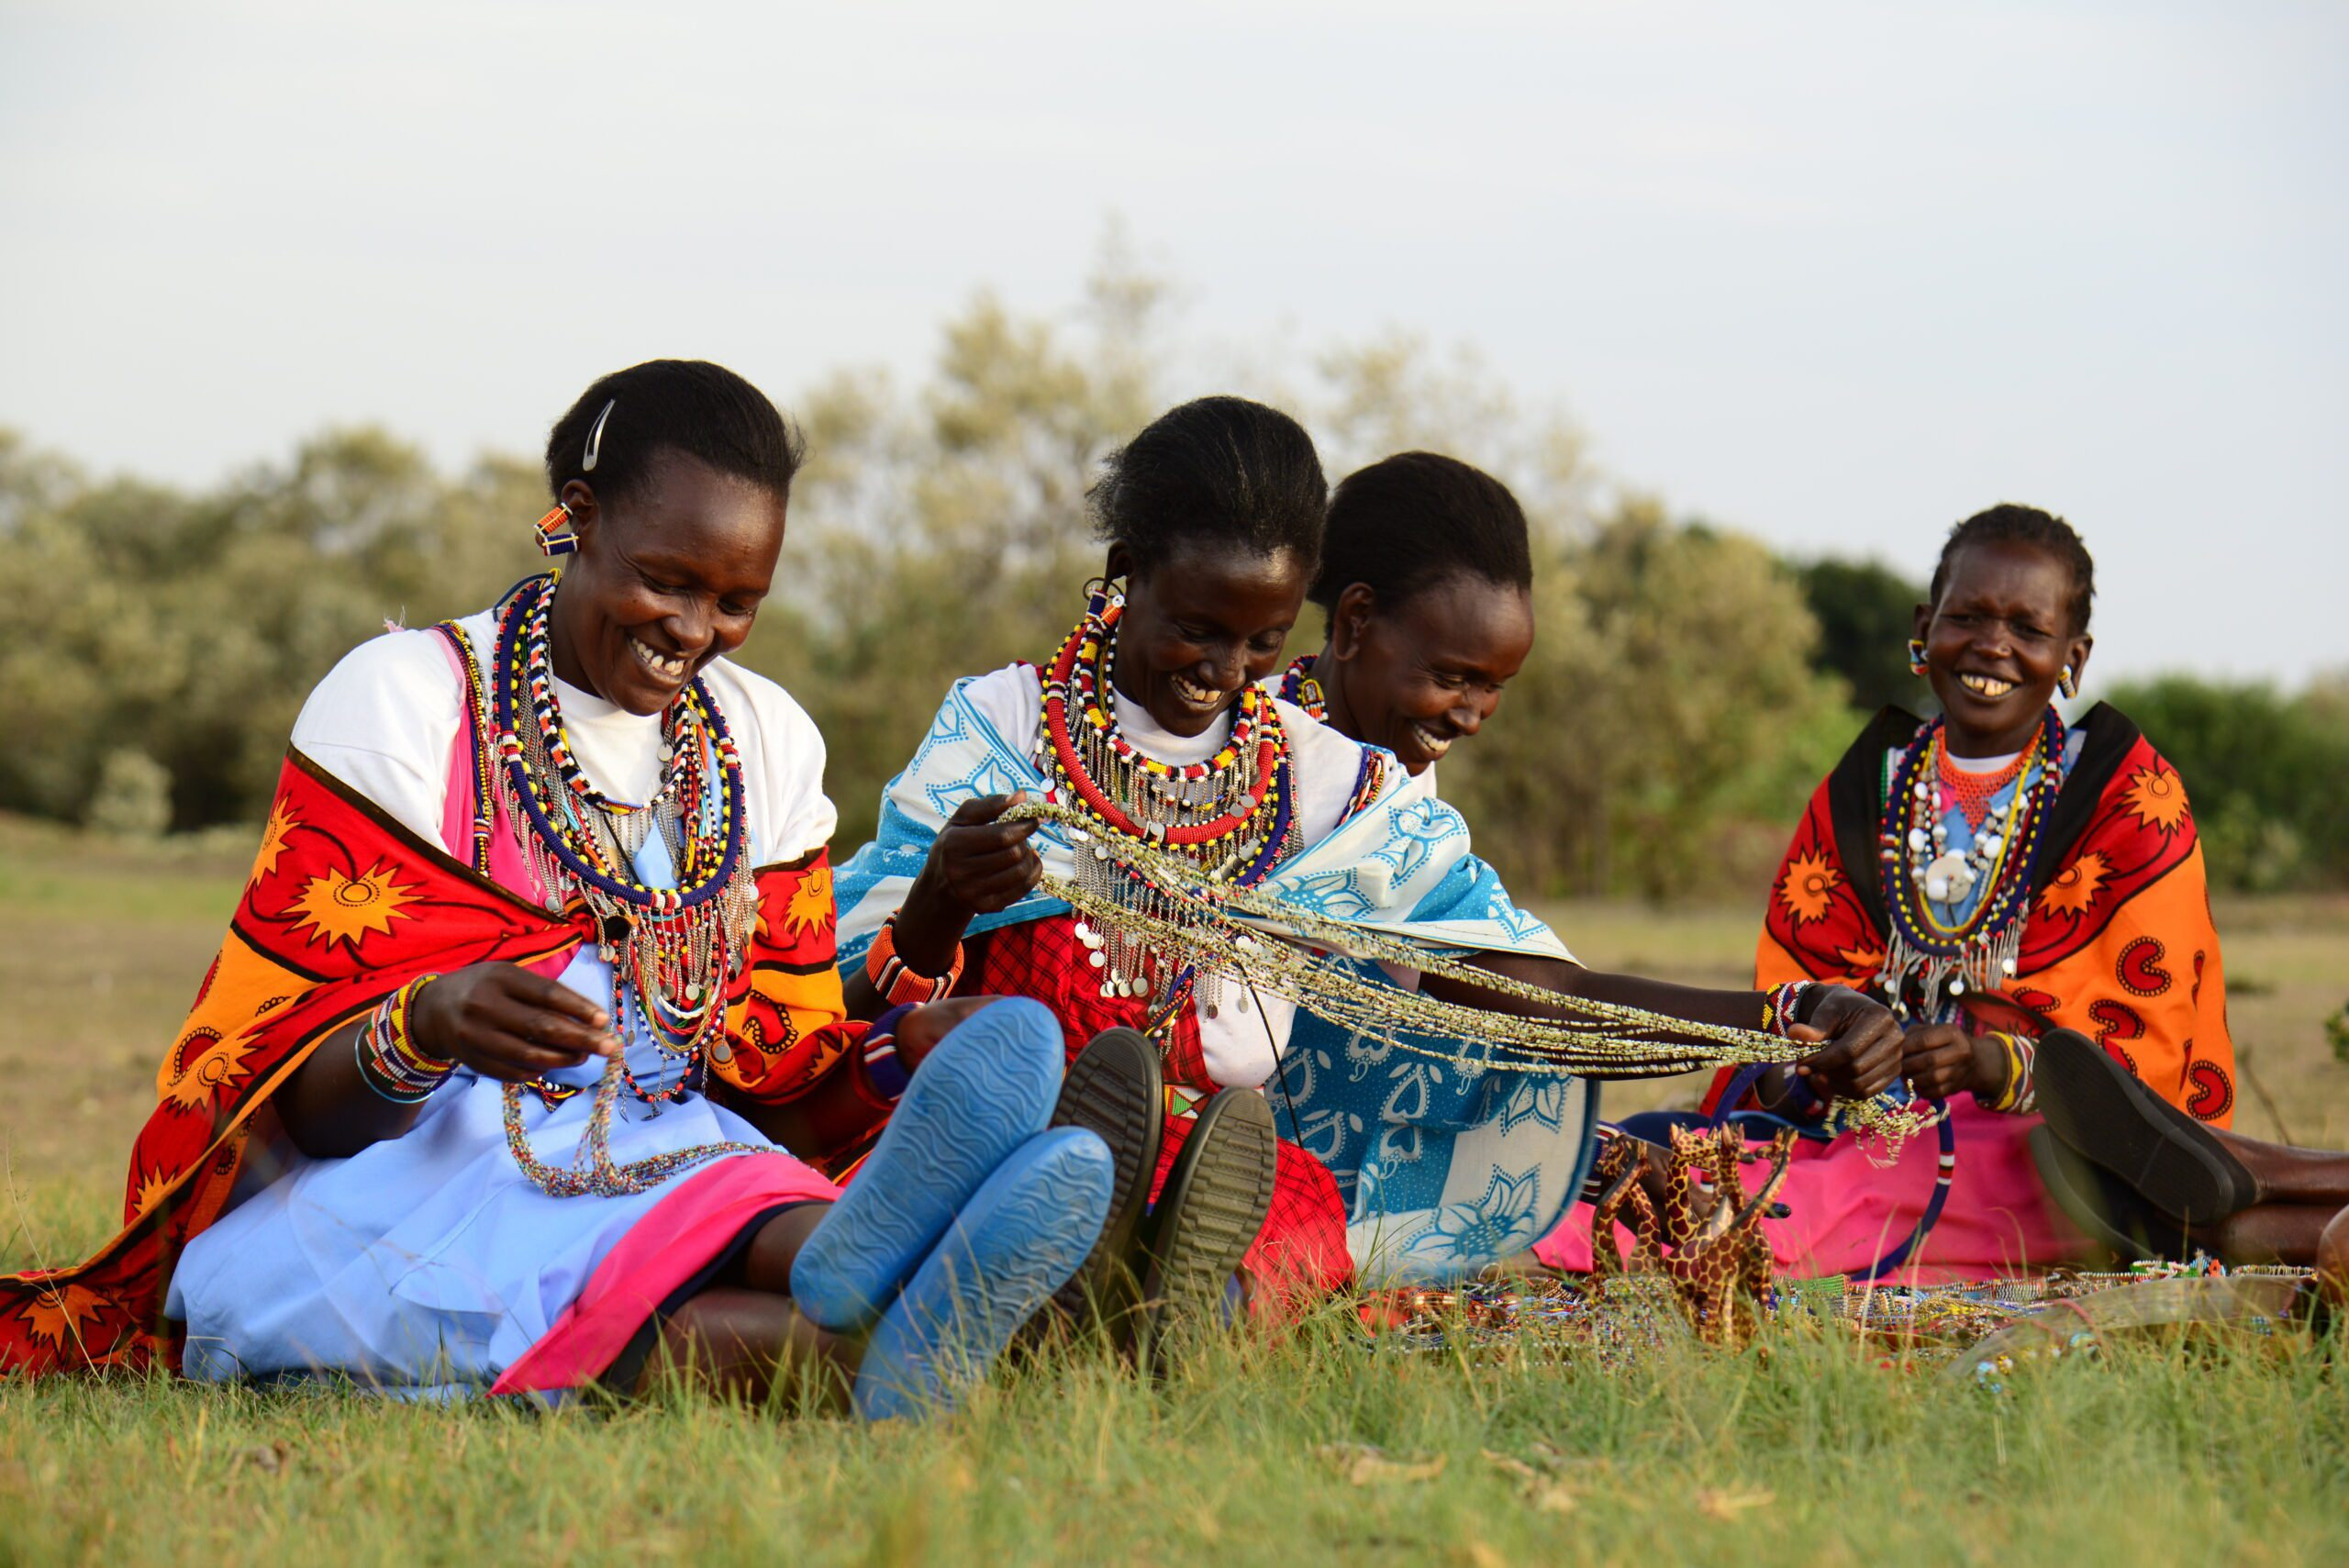 group of brightly dressed Maasai women beading while sitting in the grass